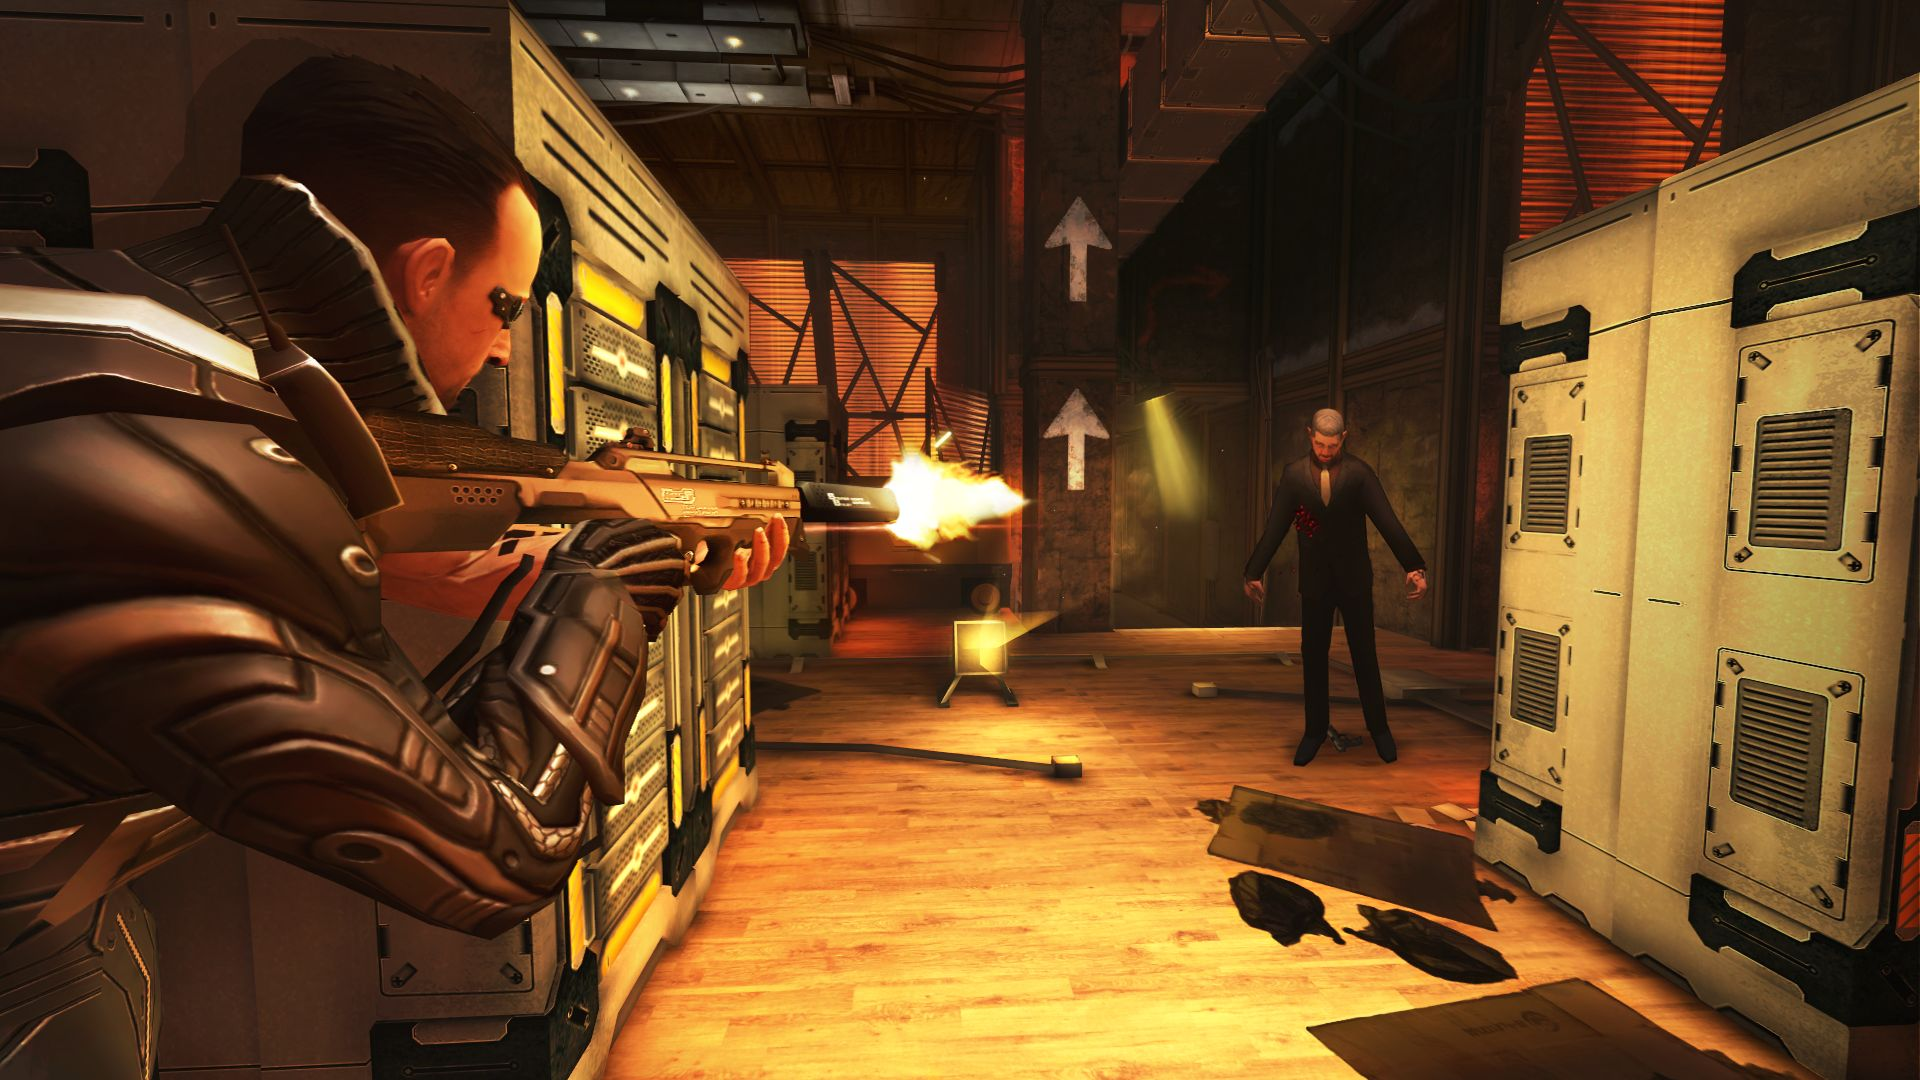 Deus Ex: The Fall (iOS) - all that glitters is not gold